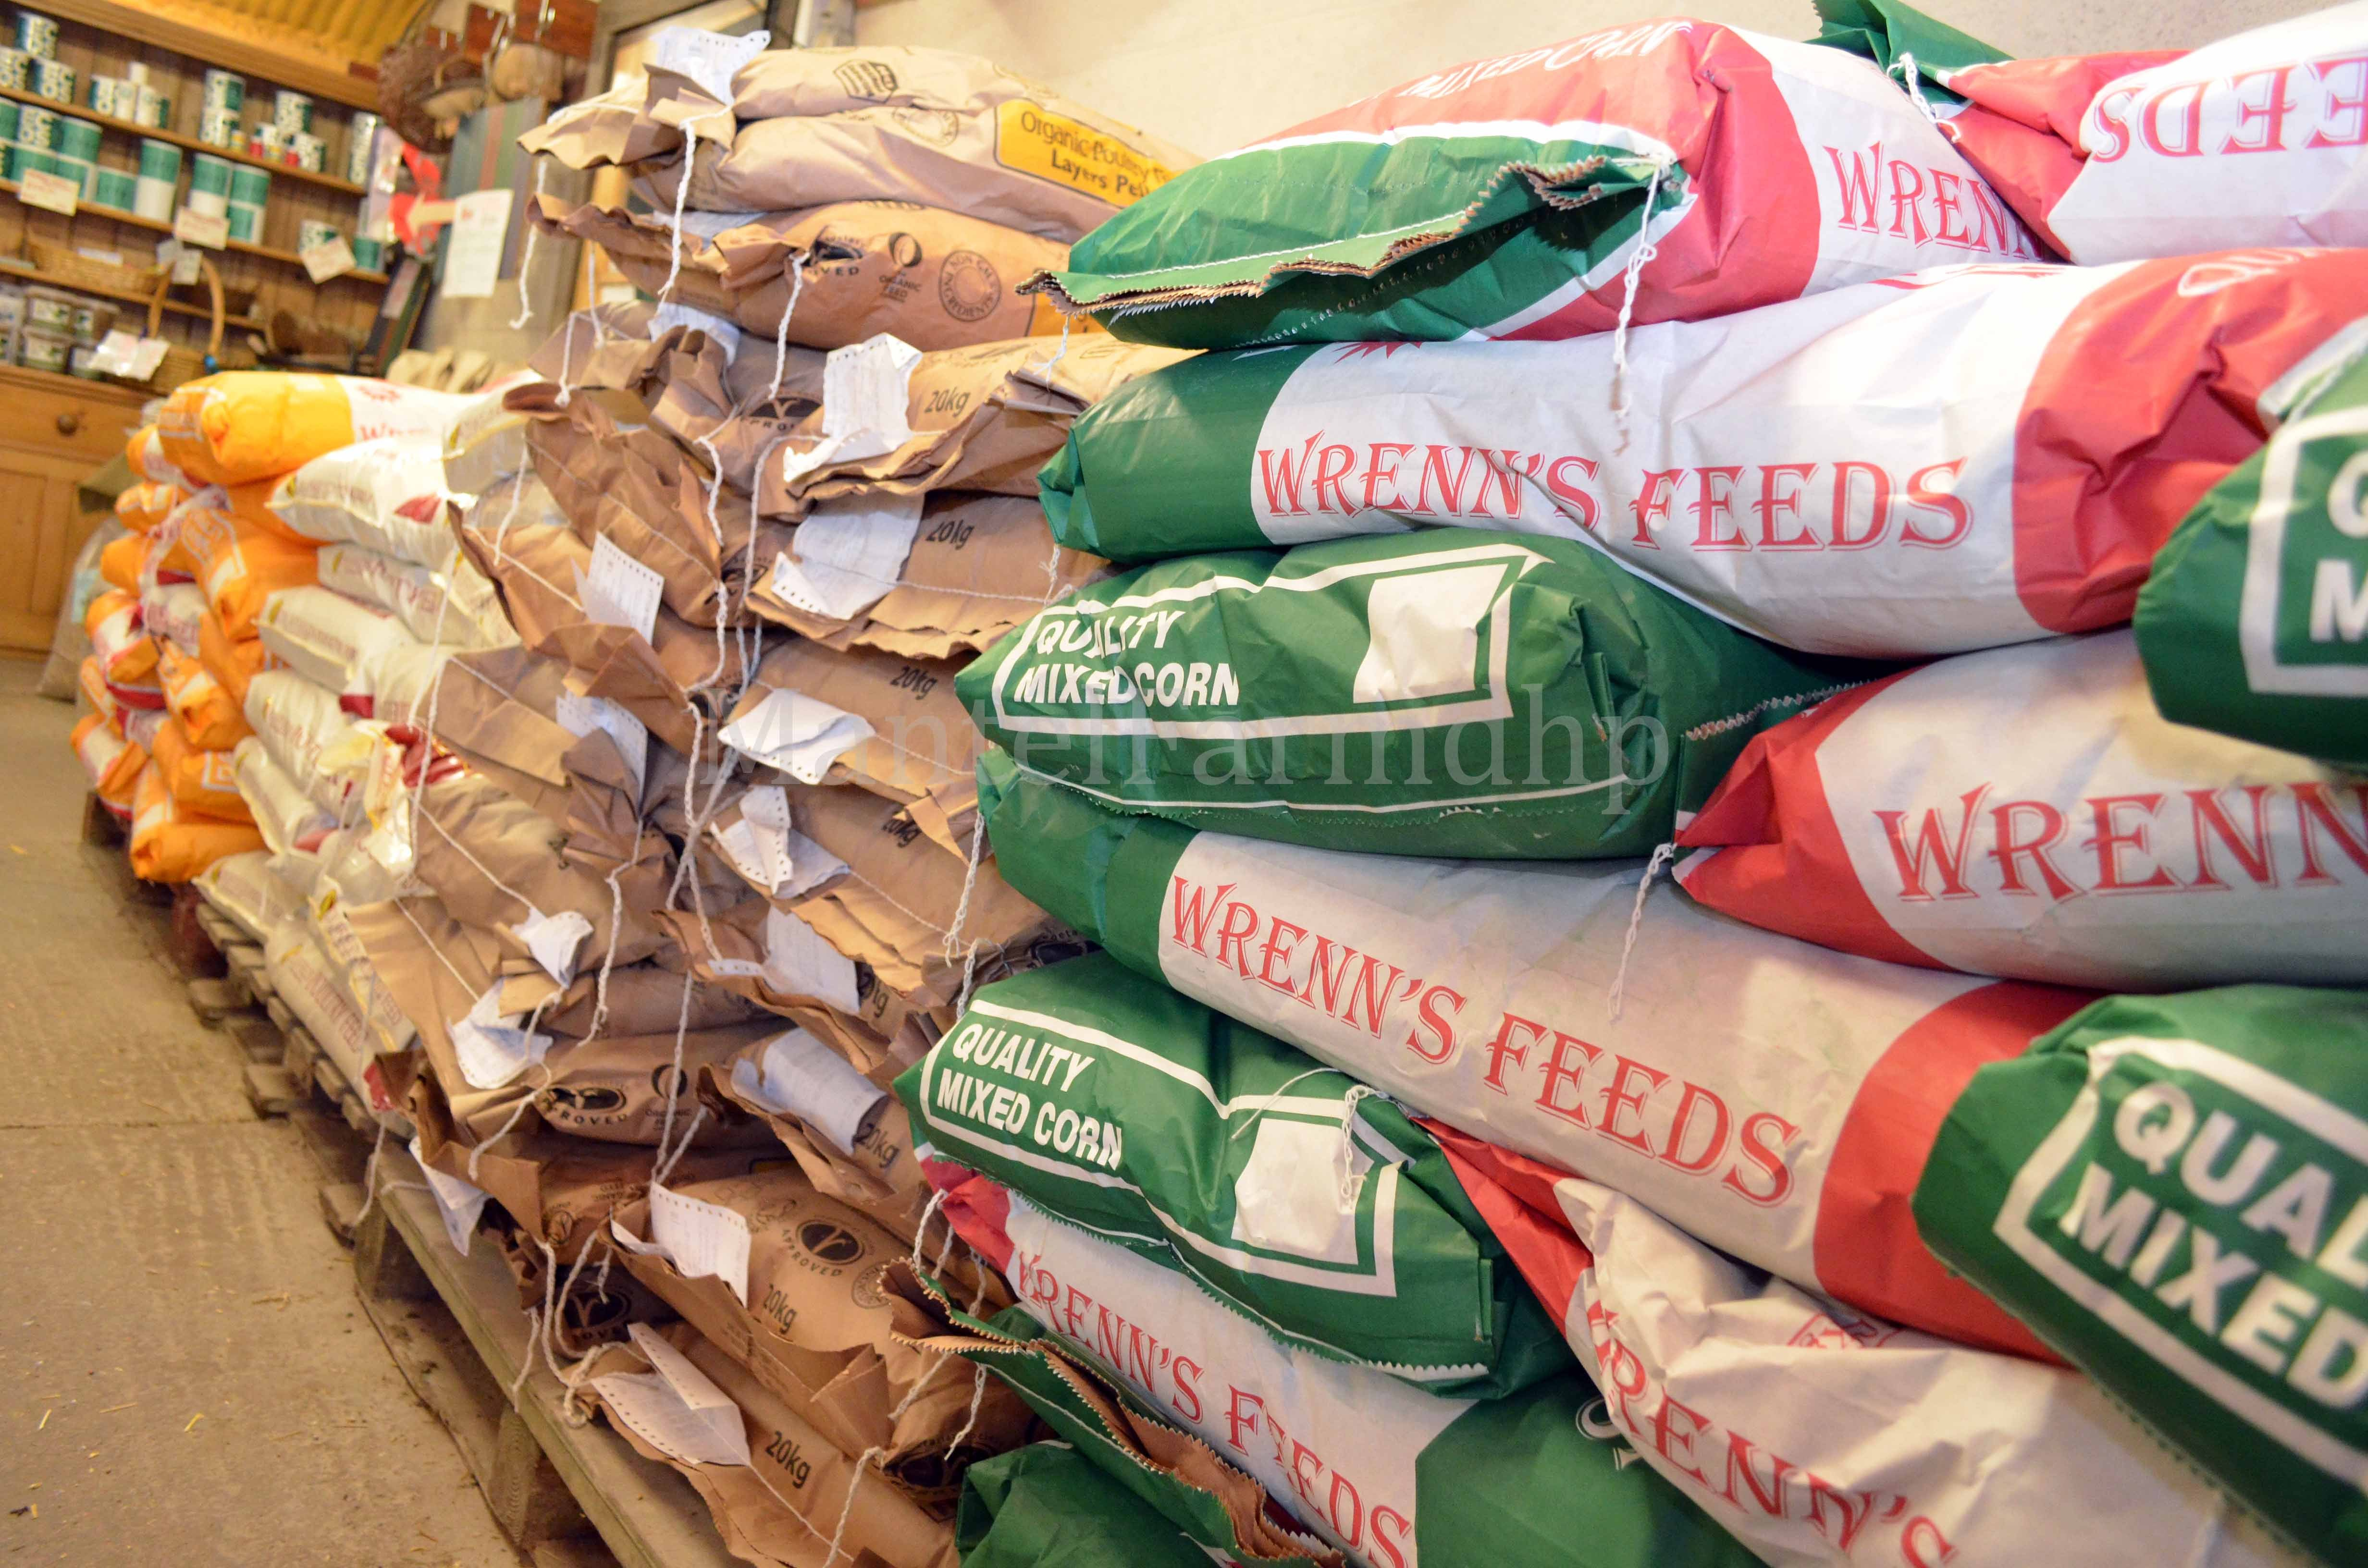 Animal Feed & Bedding